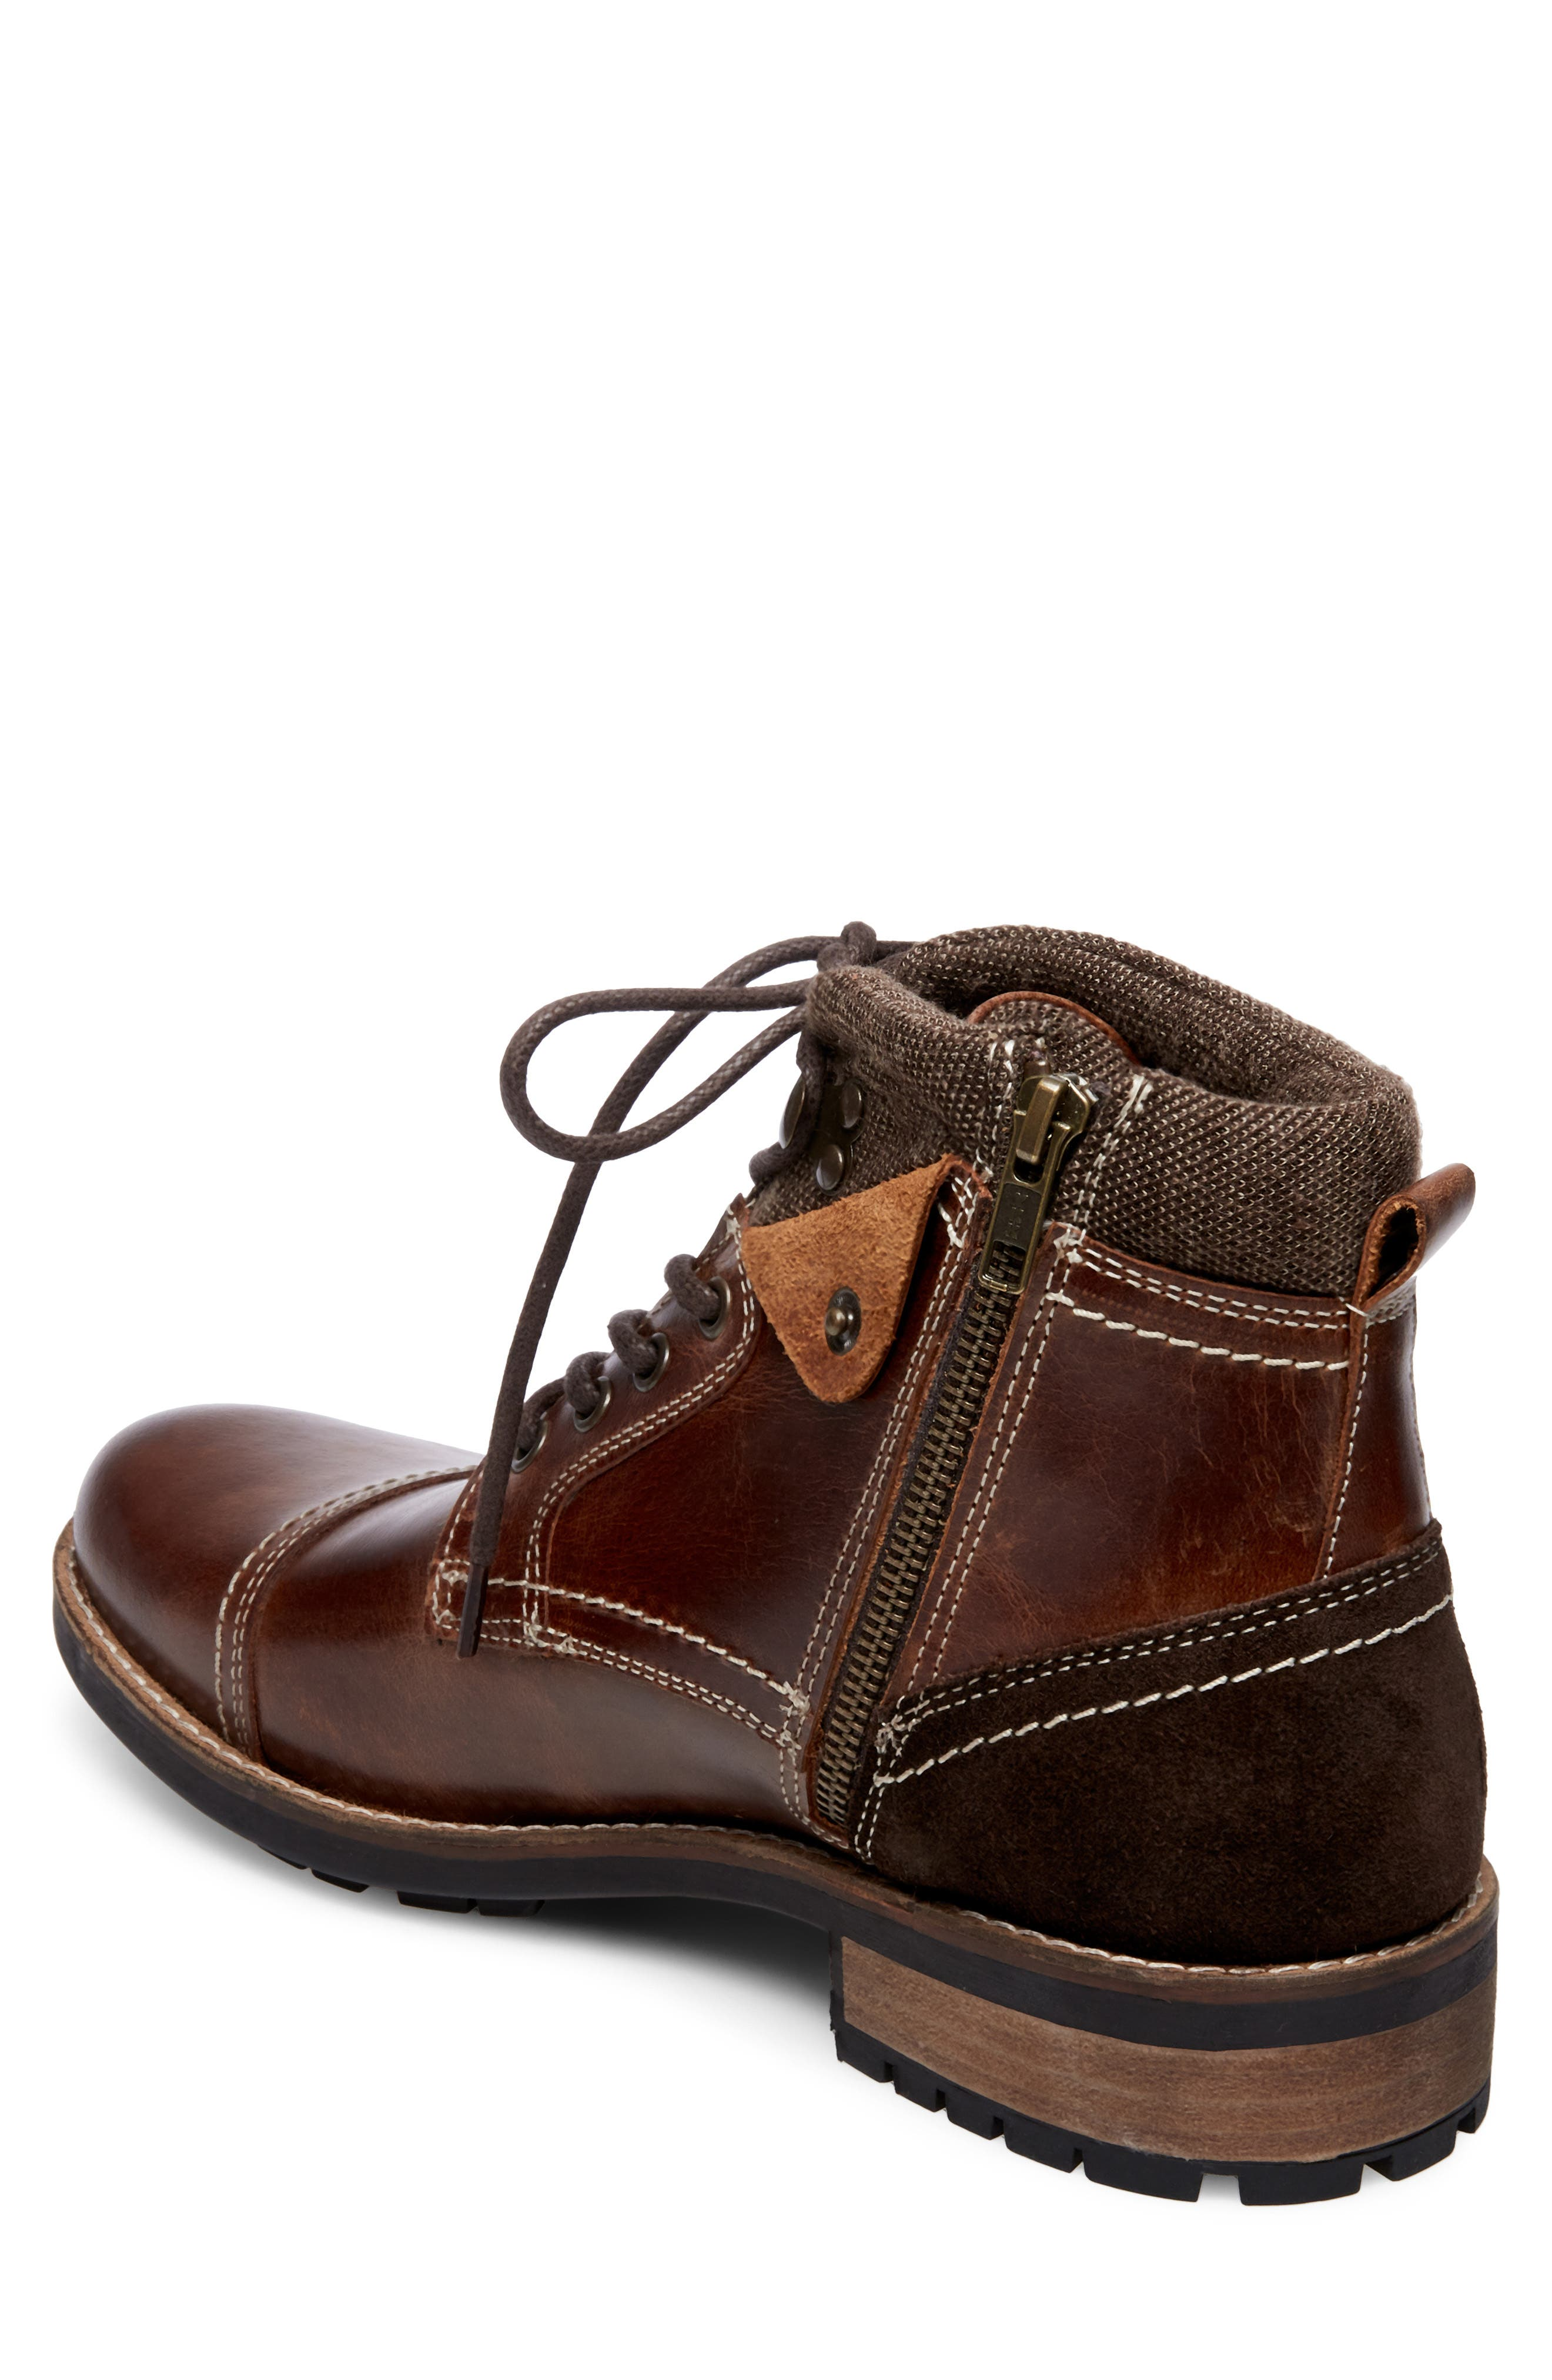 Lundin Boot,                             Alternate thumbnail 2, color,                             203